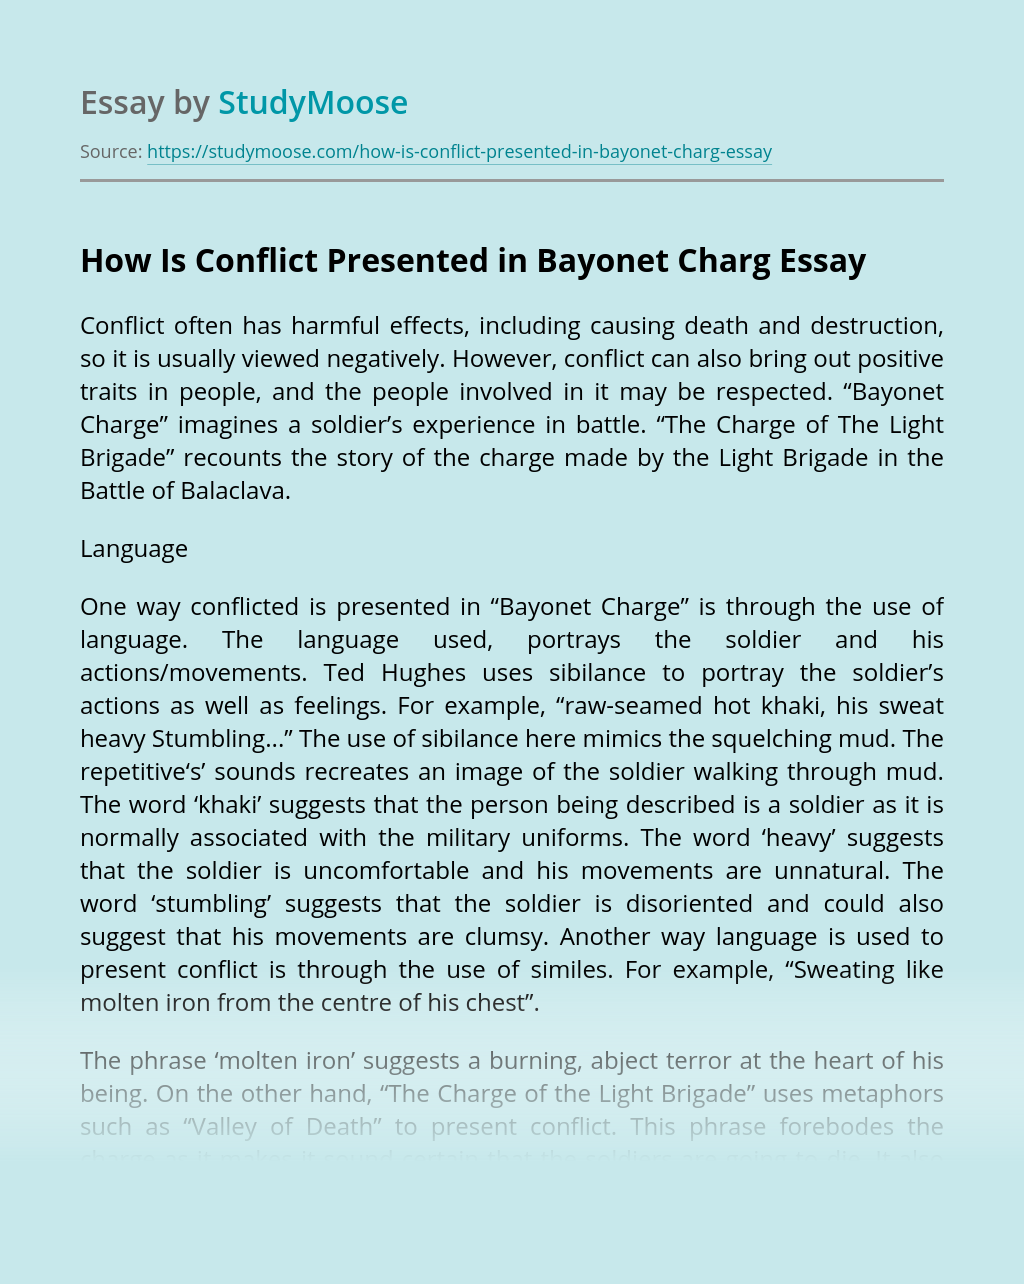 How Is Conflict Presented in Bayonet Charg